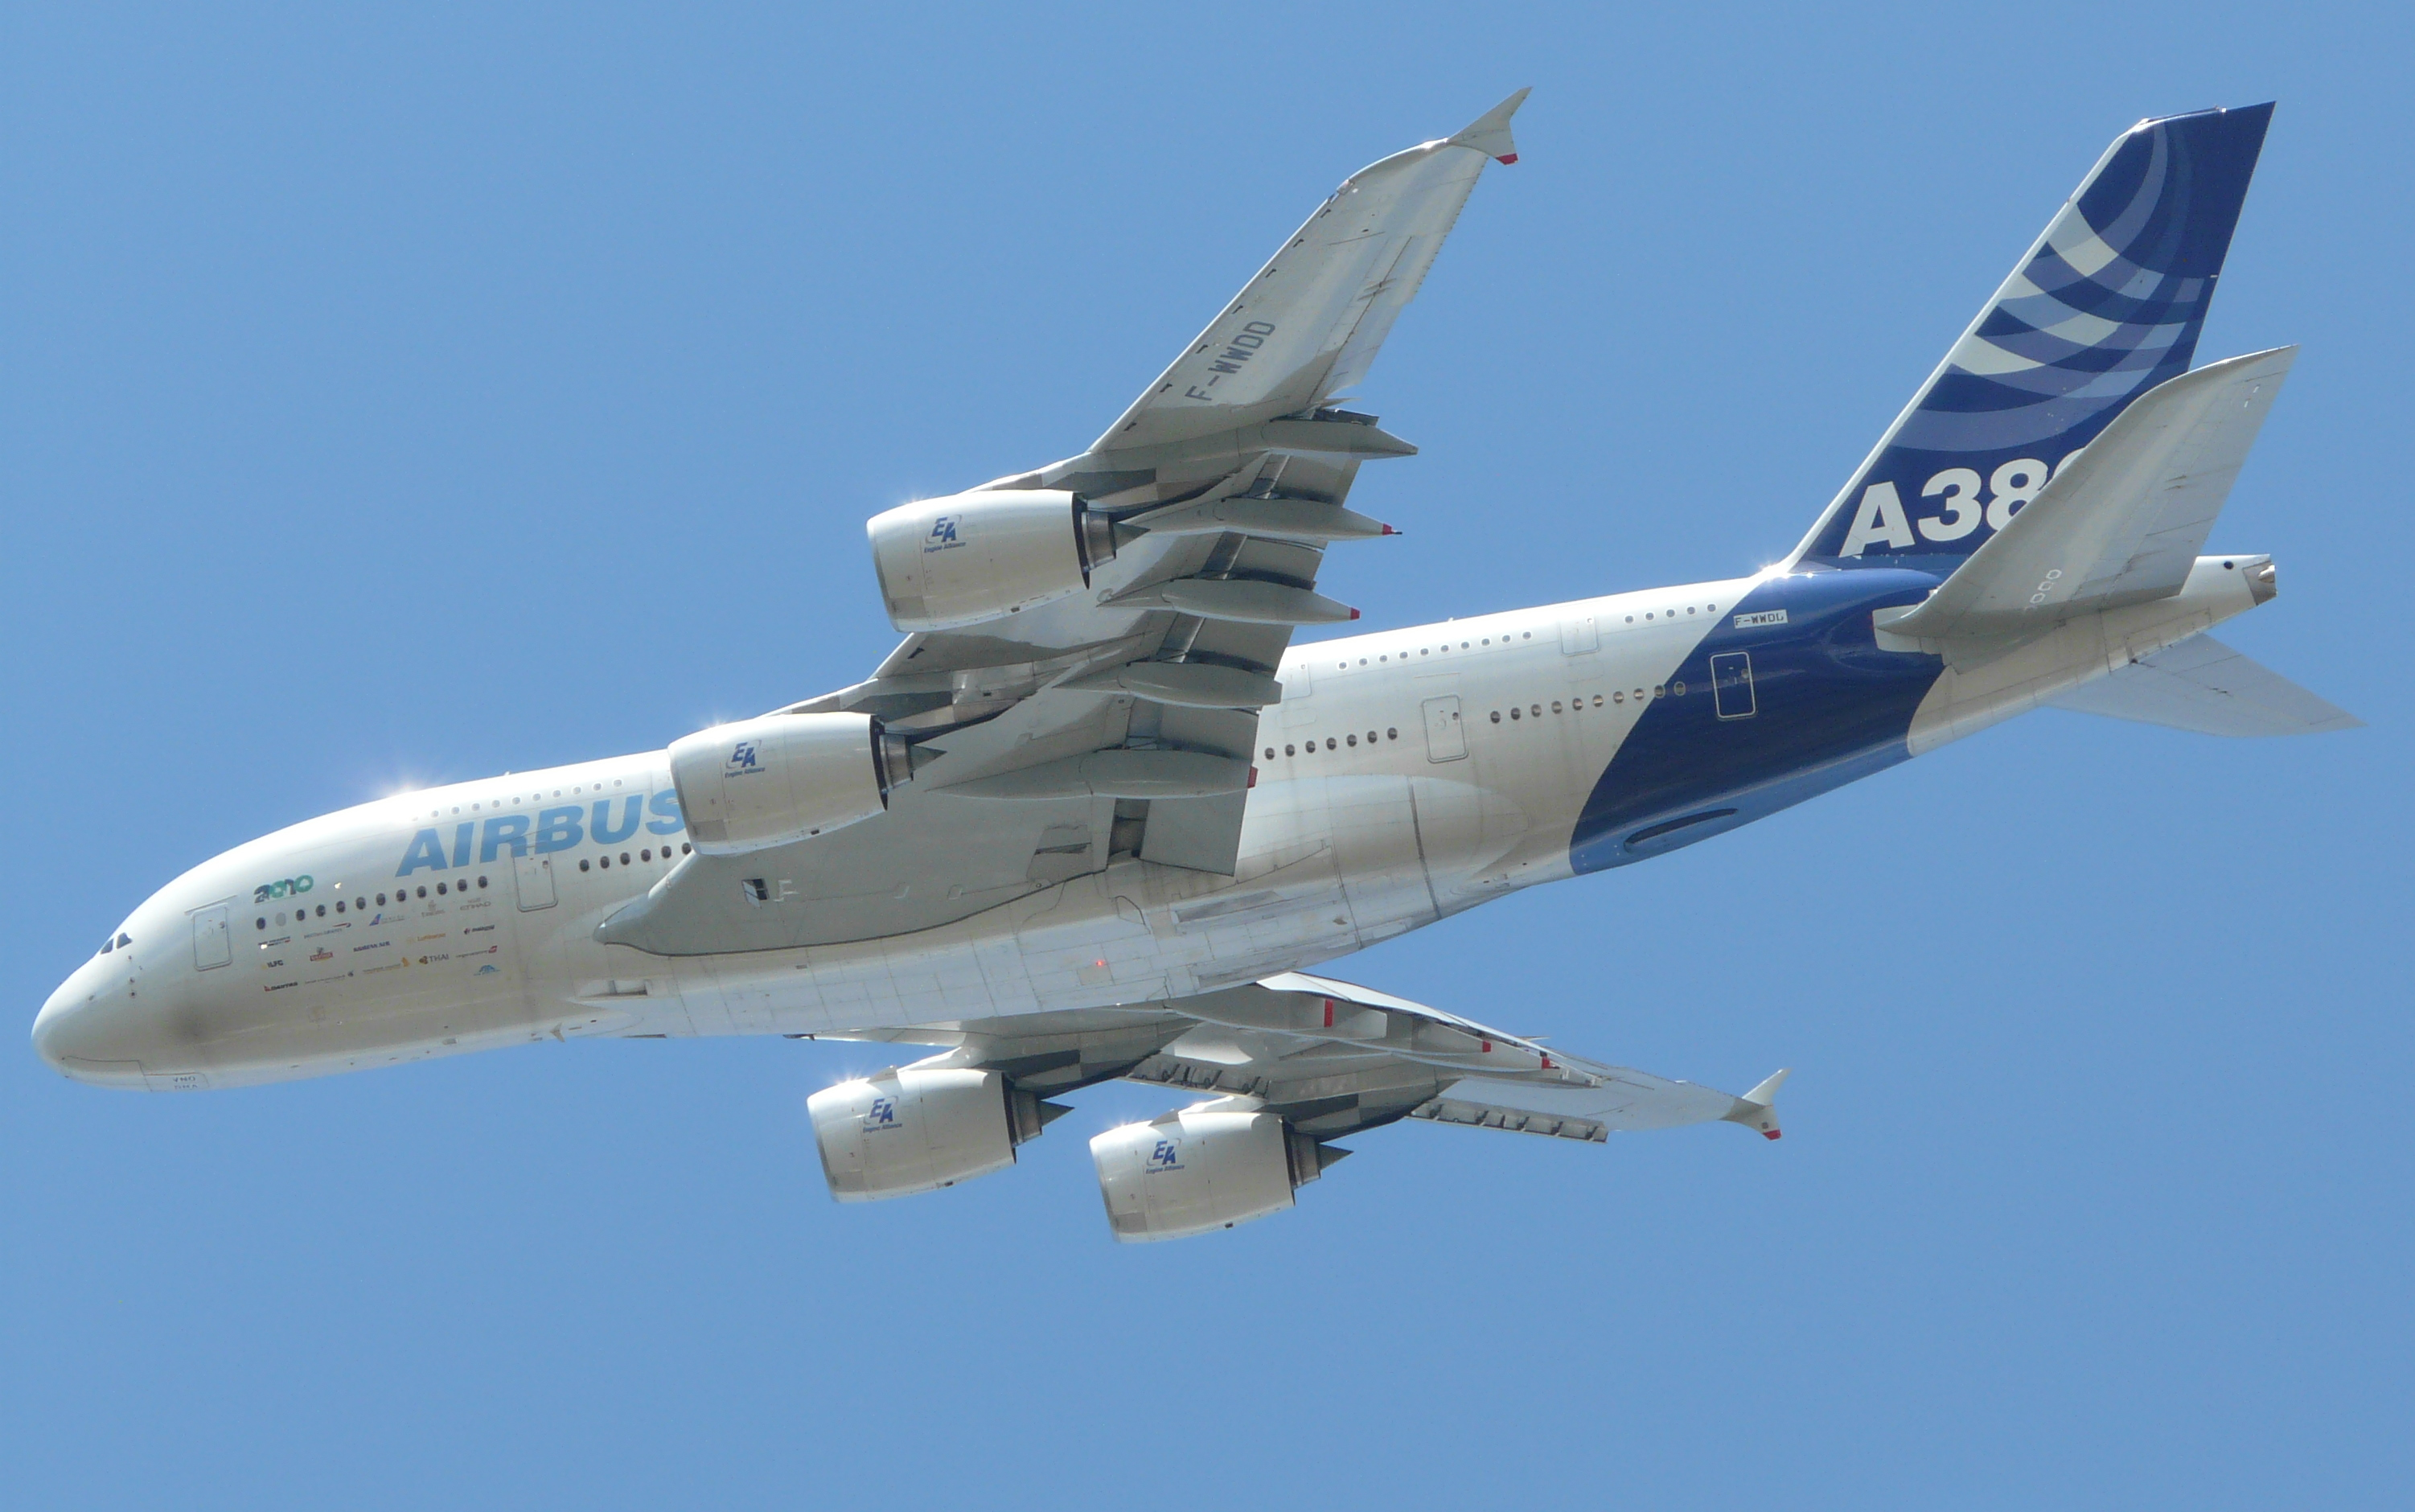 A380 at Farnborough Airshow